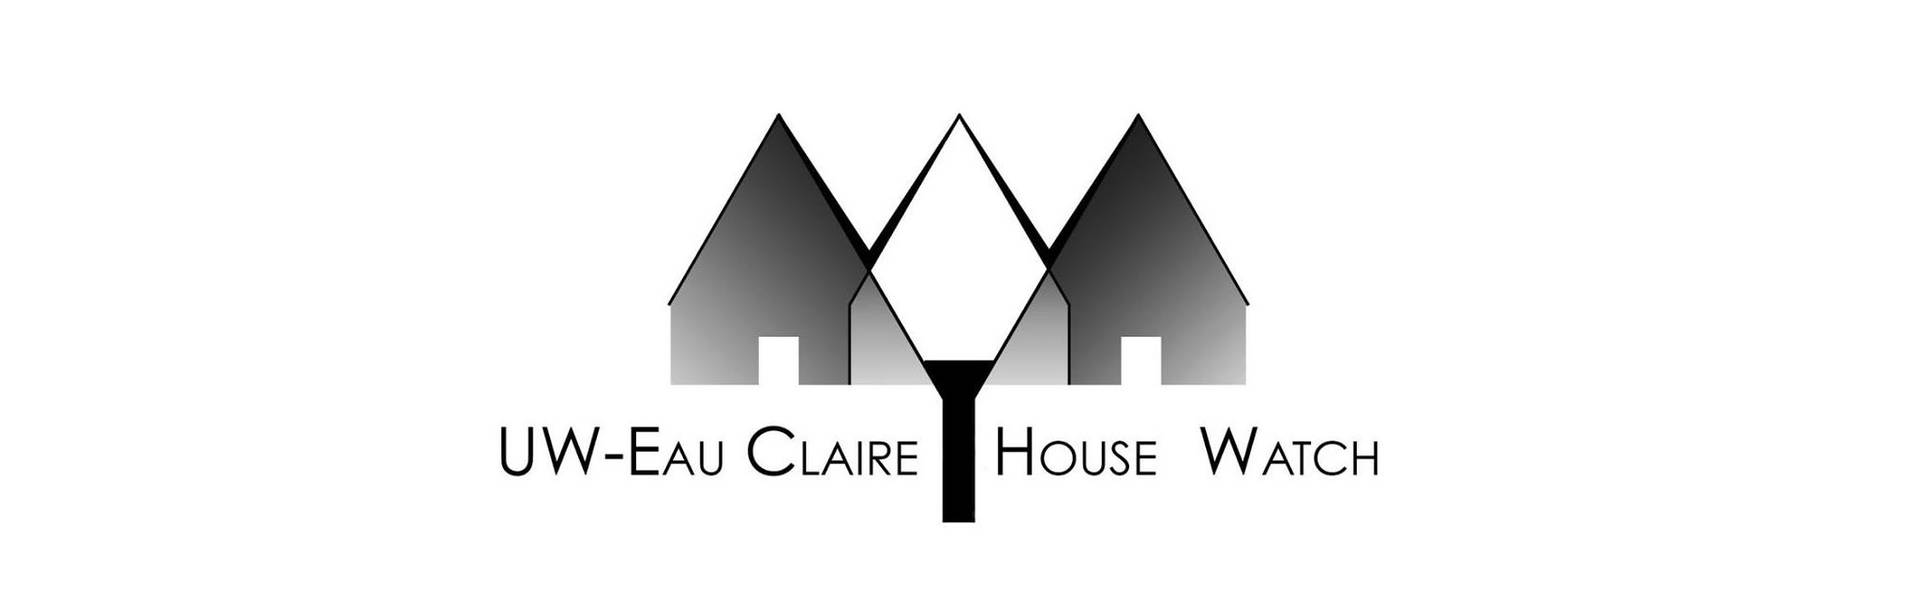 UW-Eau Claire House Watch